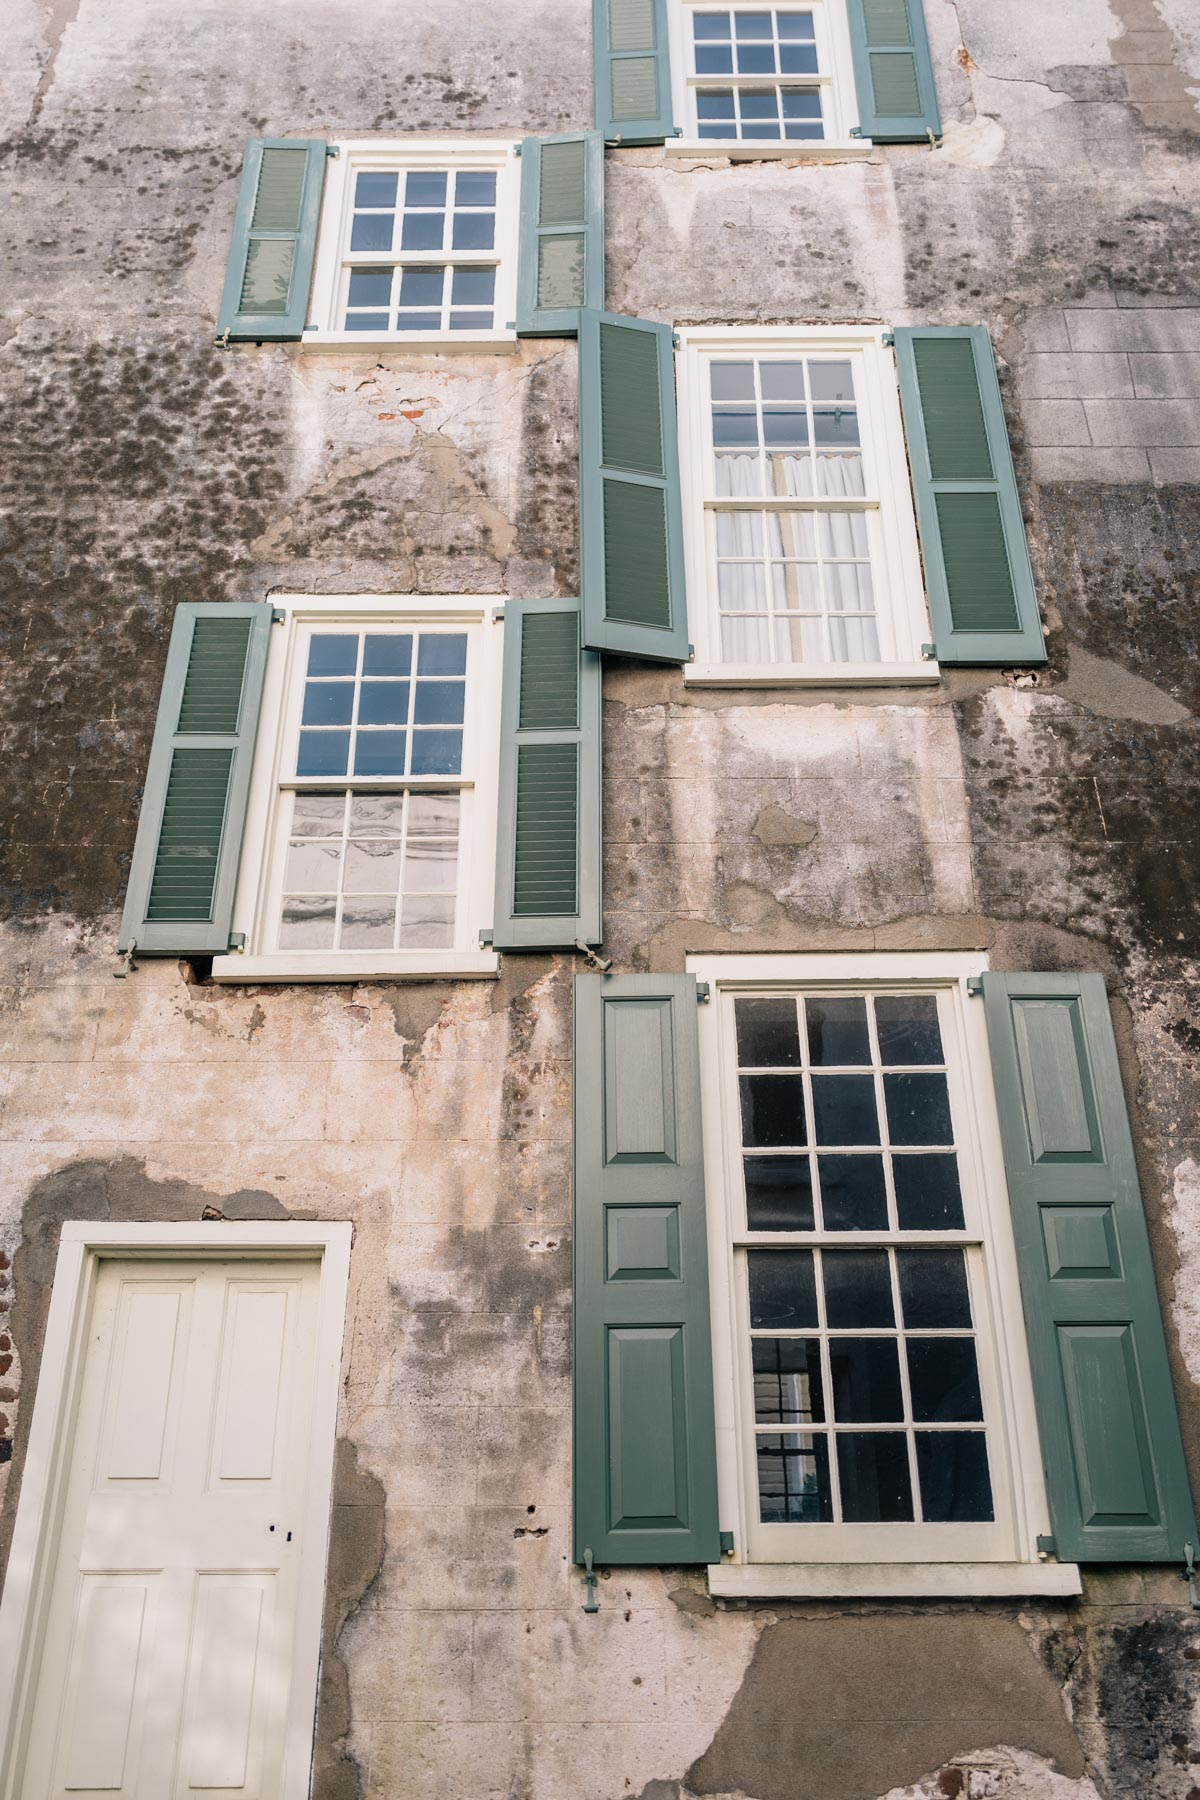 Jess Ann Kirby shares the architecture of South of Broad, Charleston South Carolina